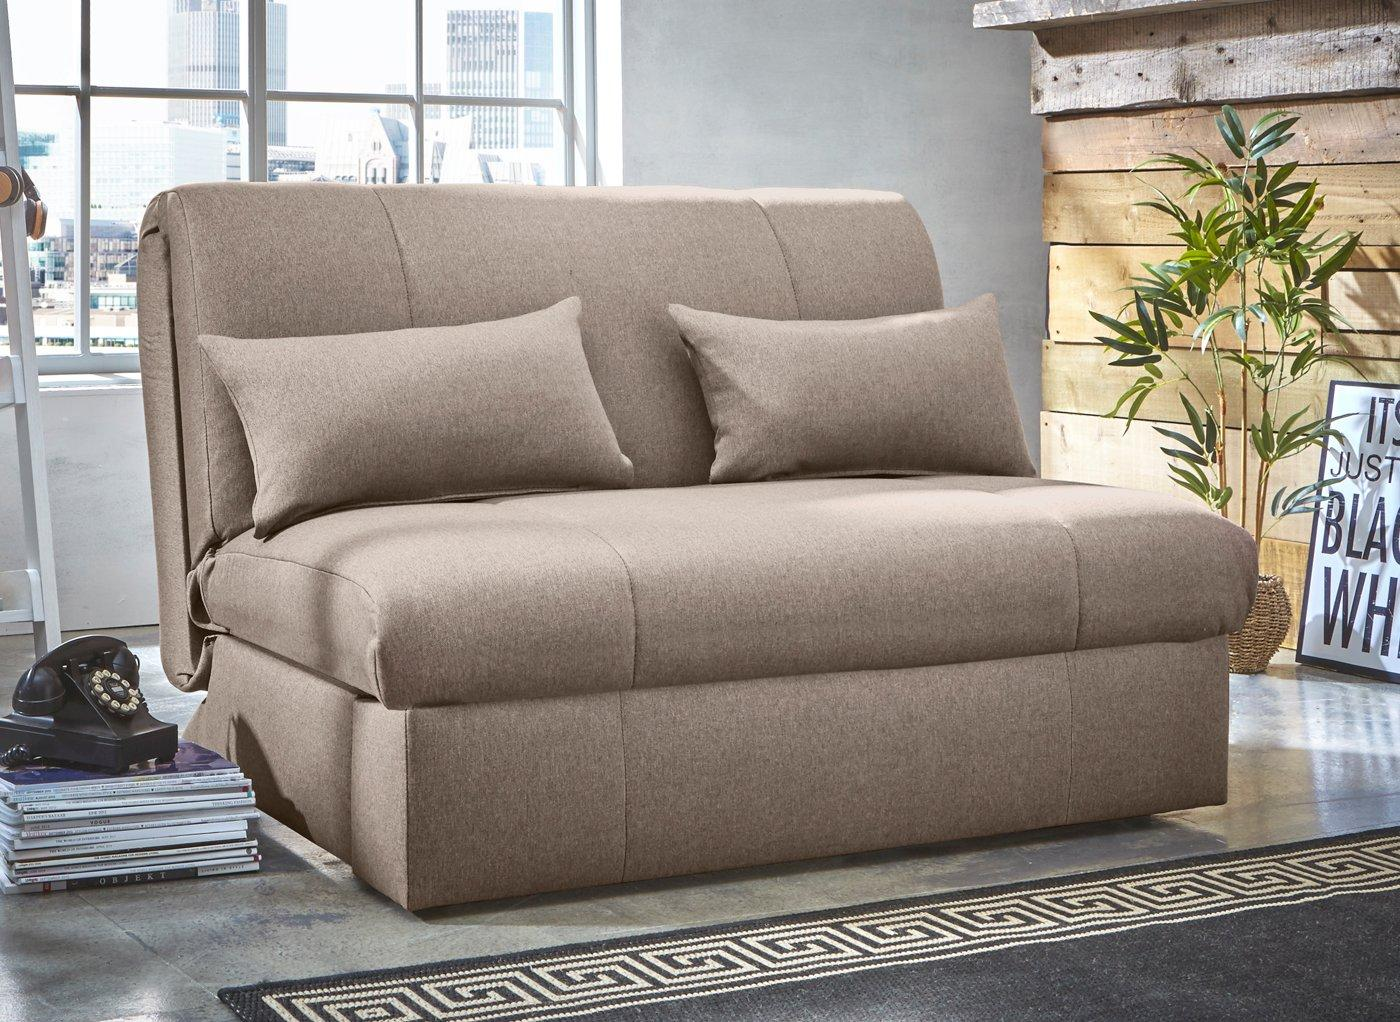 chair sofa beds rowe sofas canada small single double dreams kelso bed